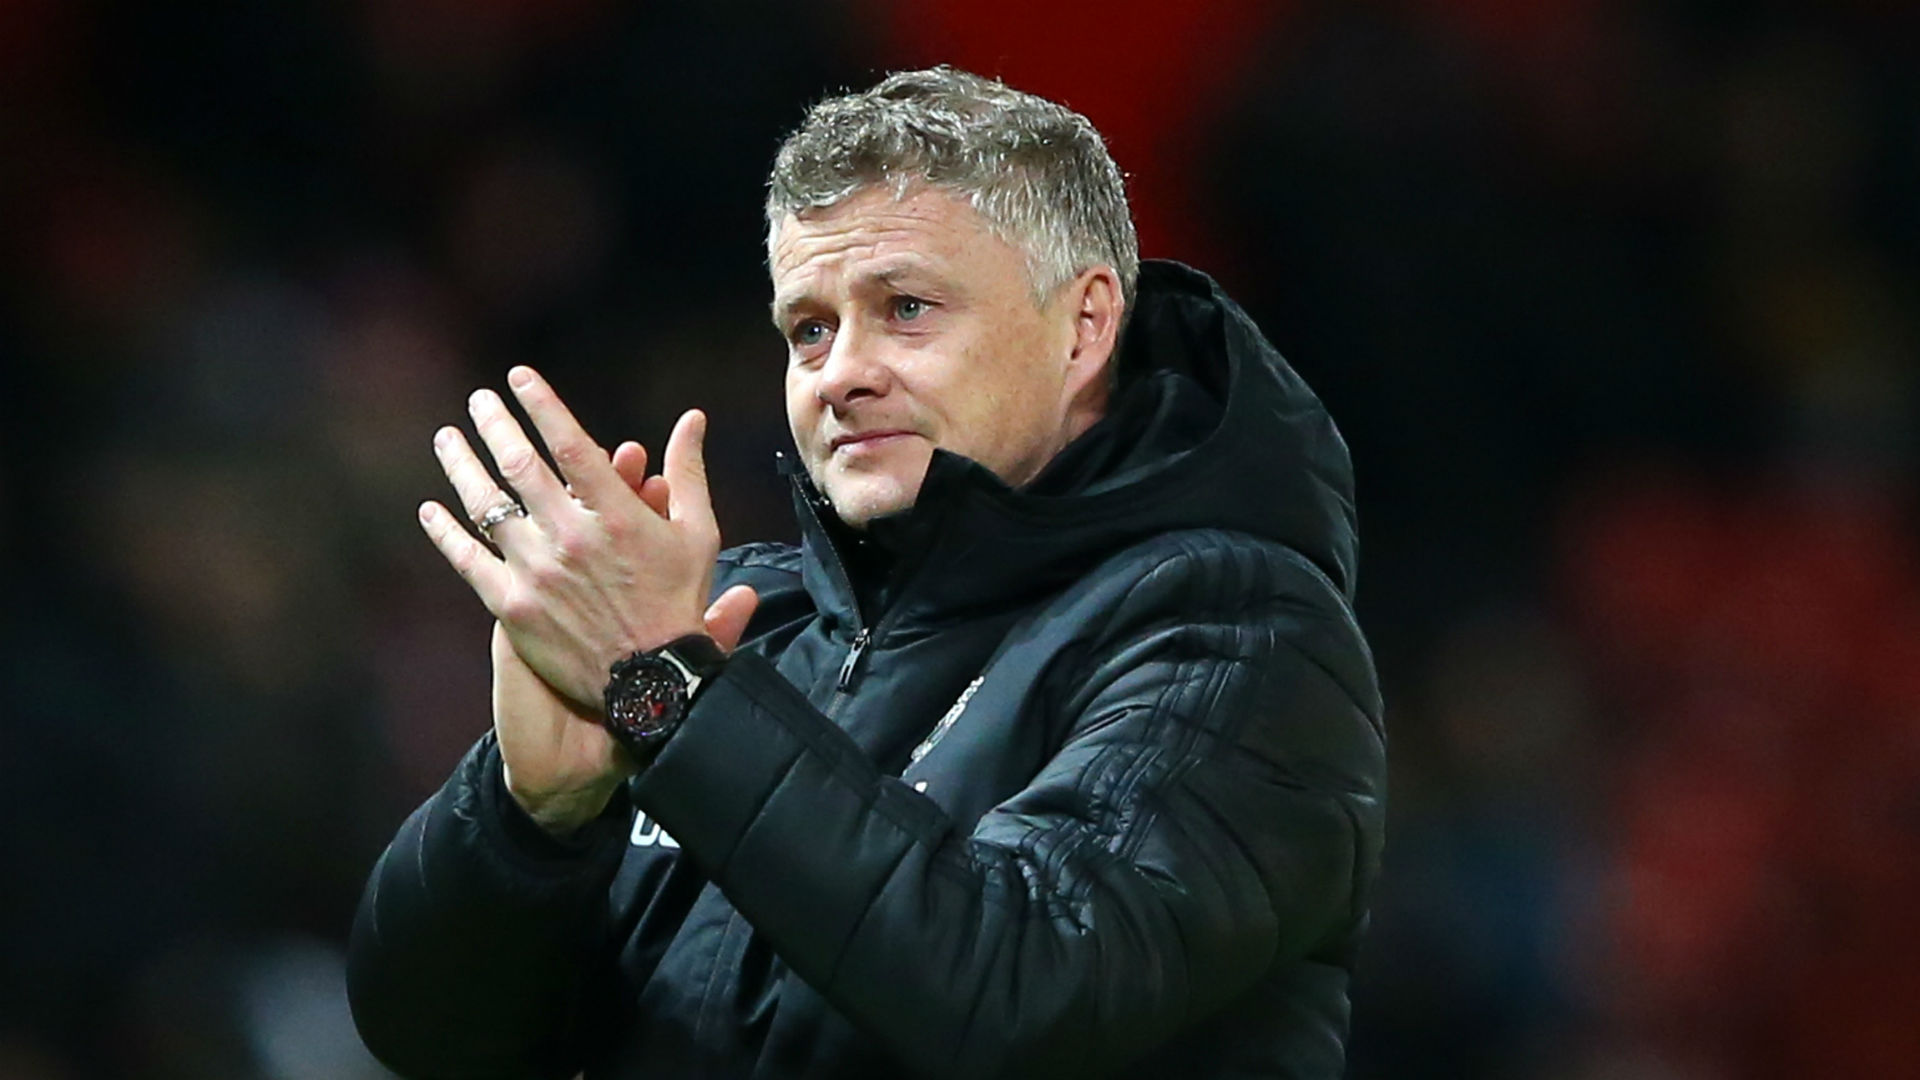 Solskjaer's Man Utd behind only Liverpool, Man City and Leicester after his first year in charge